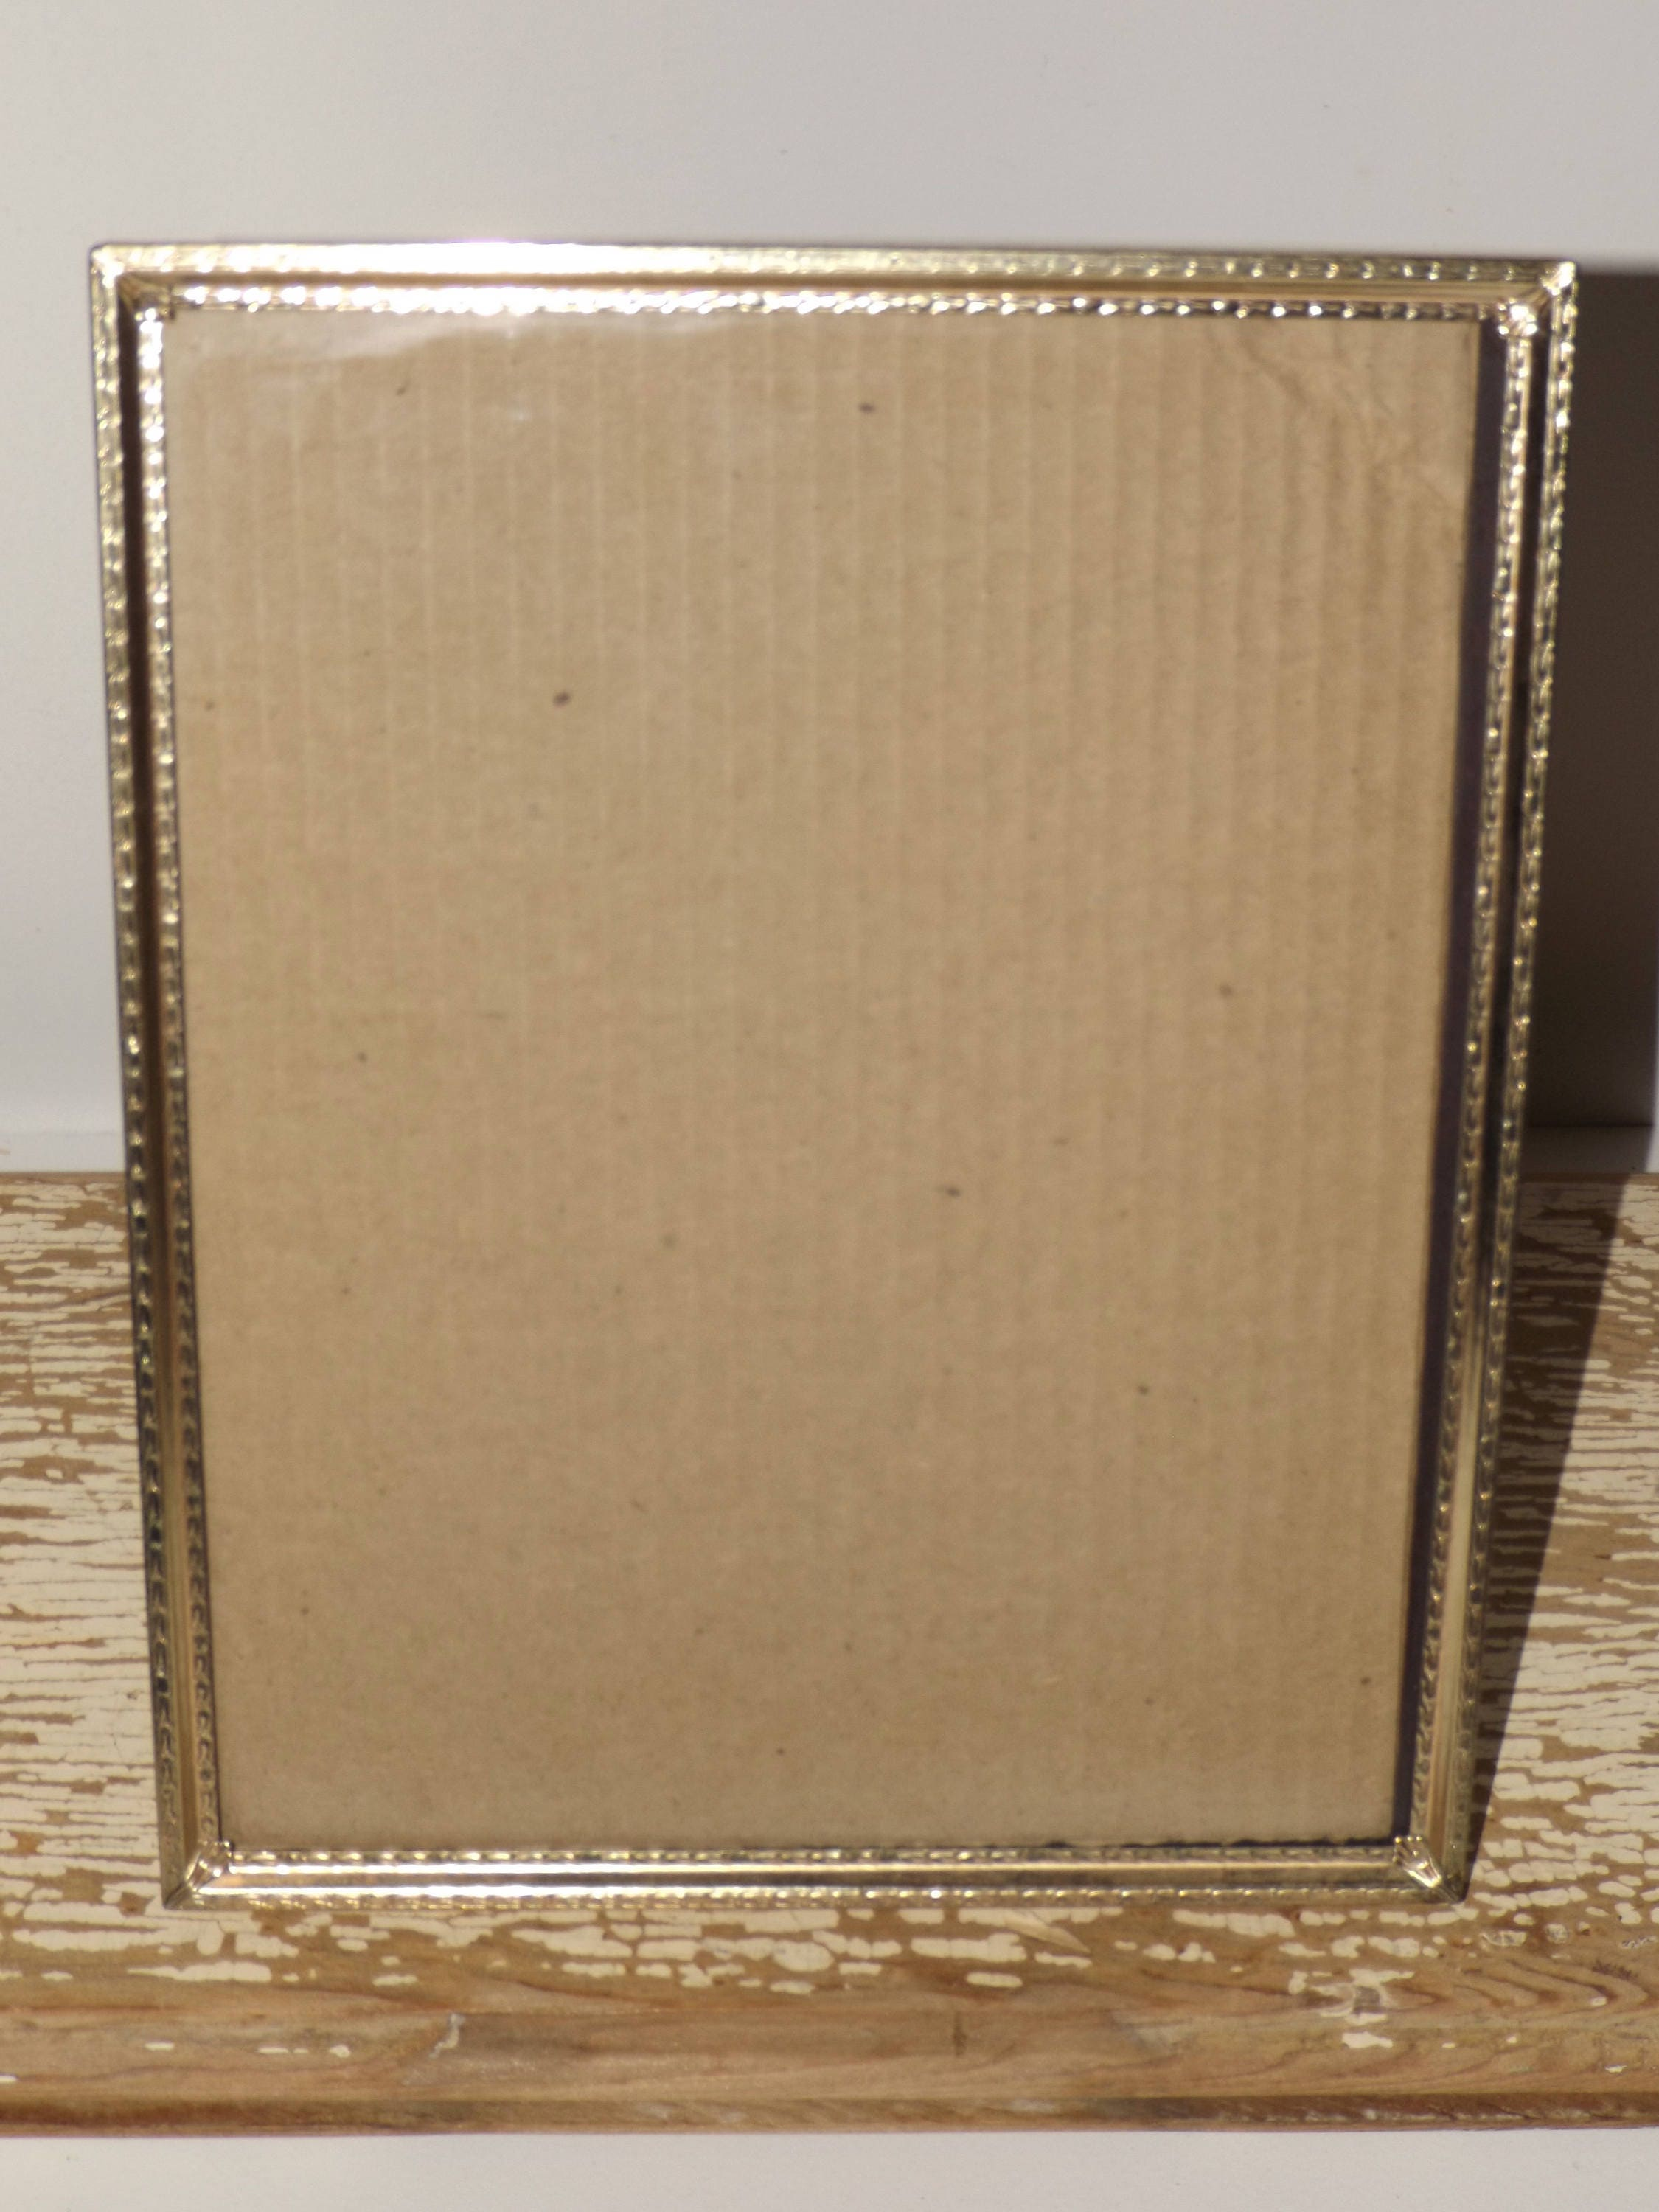 Gold tone picture frames8 x 10set of 3glass frontornate gold sold by mythreesonsvintage jeuxipadfo Images